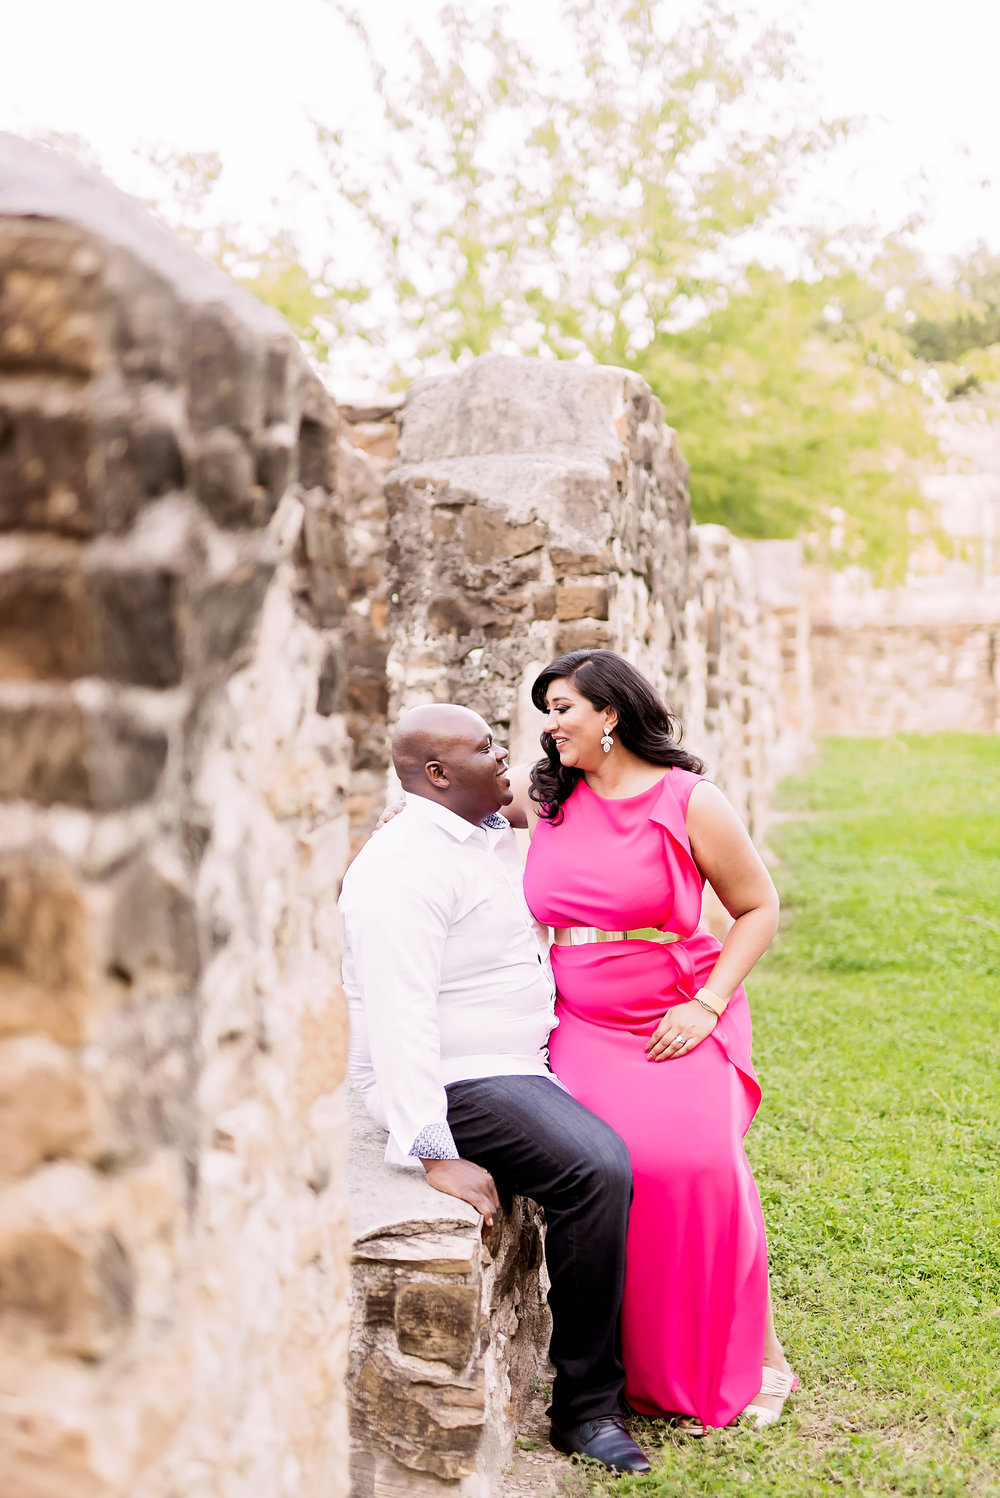 Avutu-Pharris-Photography-Maternity-Photoshoot-8.jpg